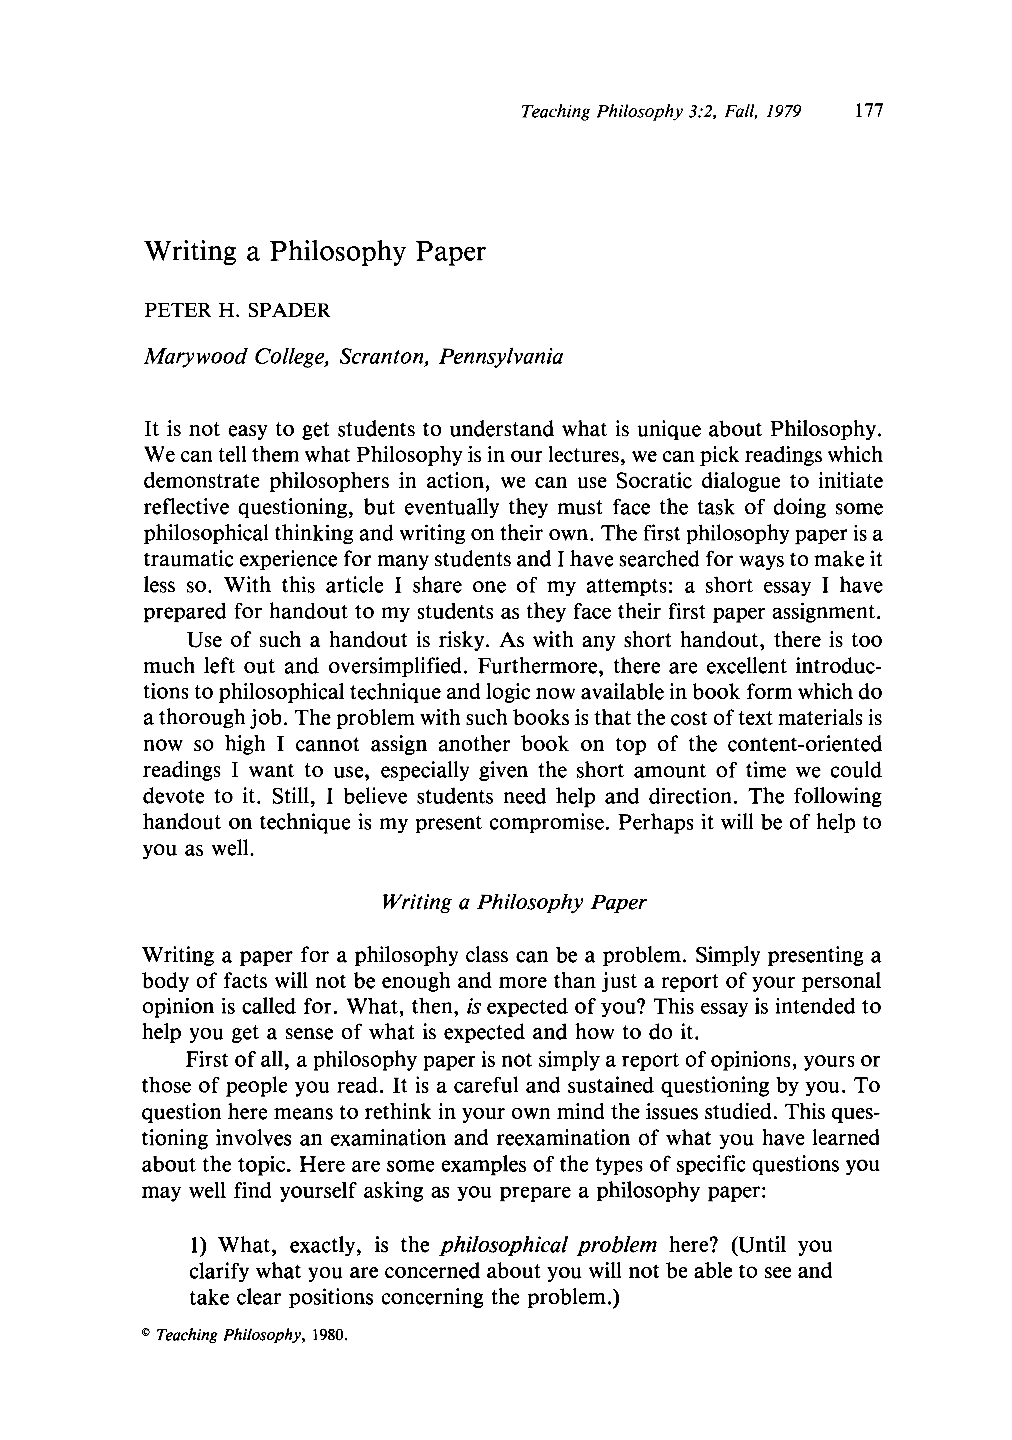 philosophy 3 essay Freedom, rights, and political philosophy, part 3 by george h smith facebook smith discusses the distinction between political obligation and political allegiance as i explained in my last essay.